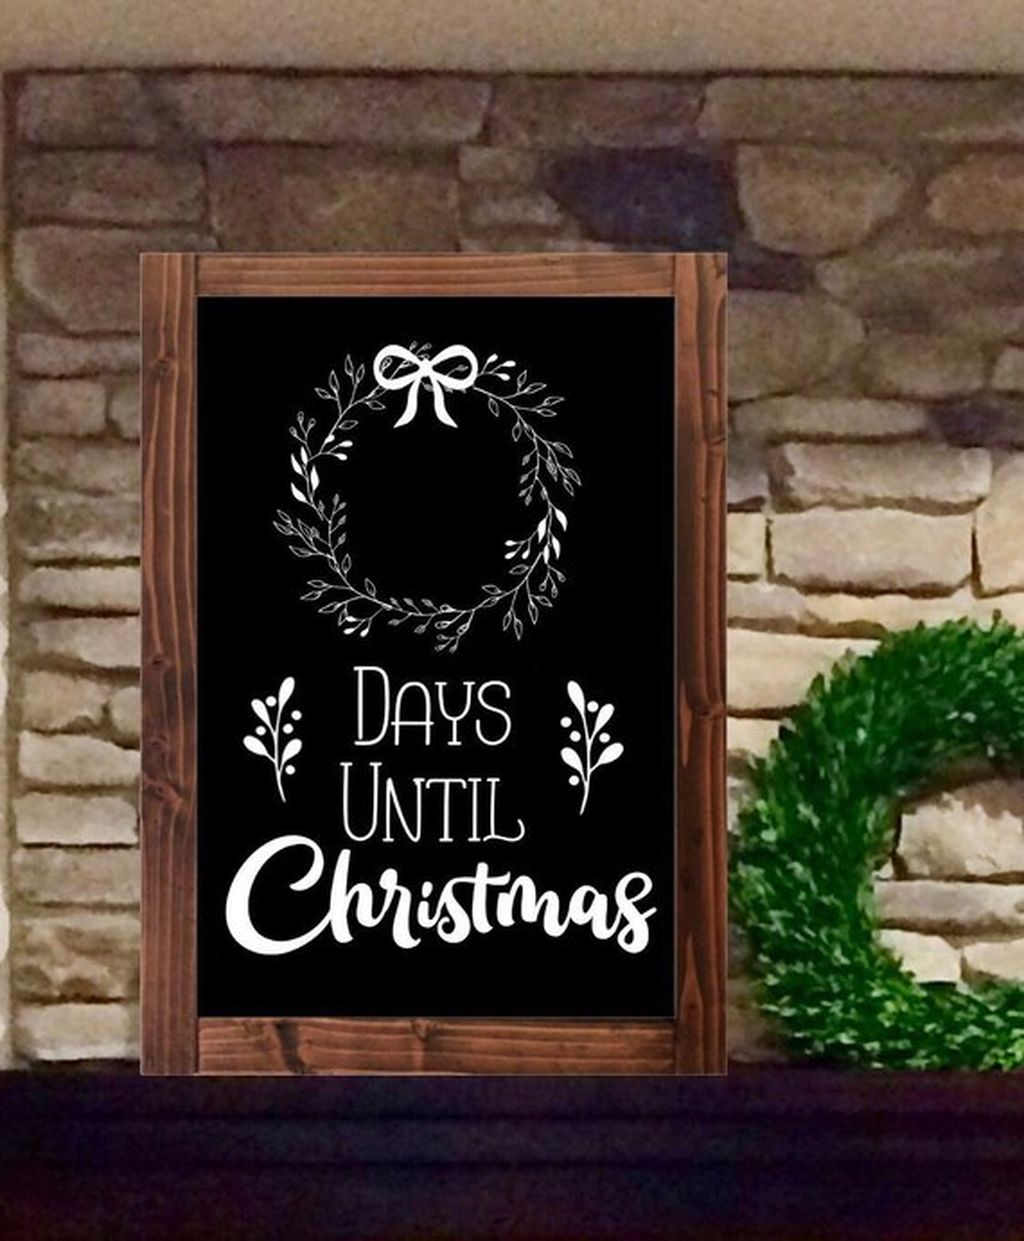 Inspiring Christmas Chalkboard Signs Design Ideas 17